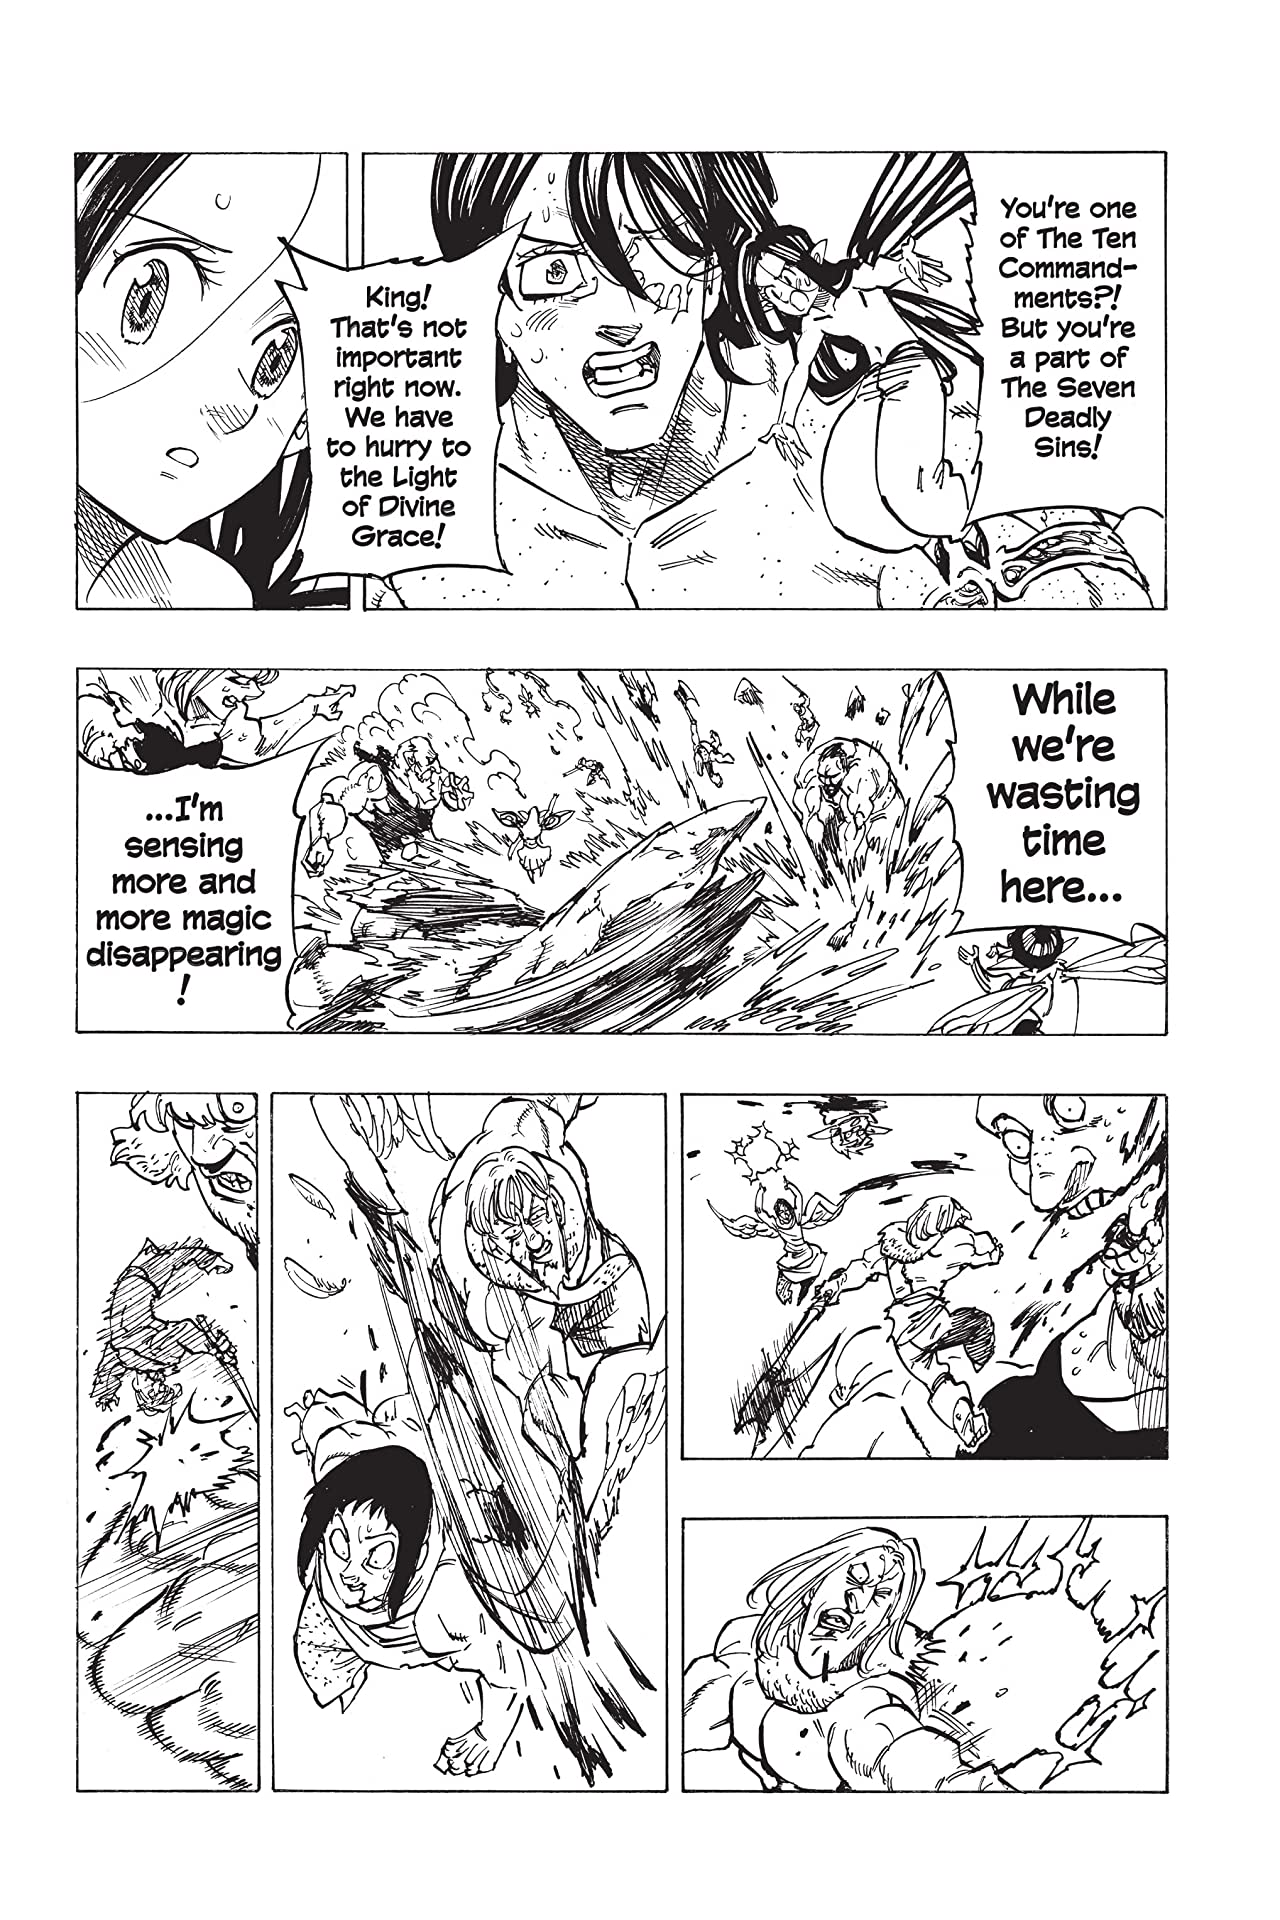 The Seven Deadly Sins #211